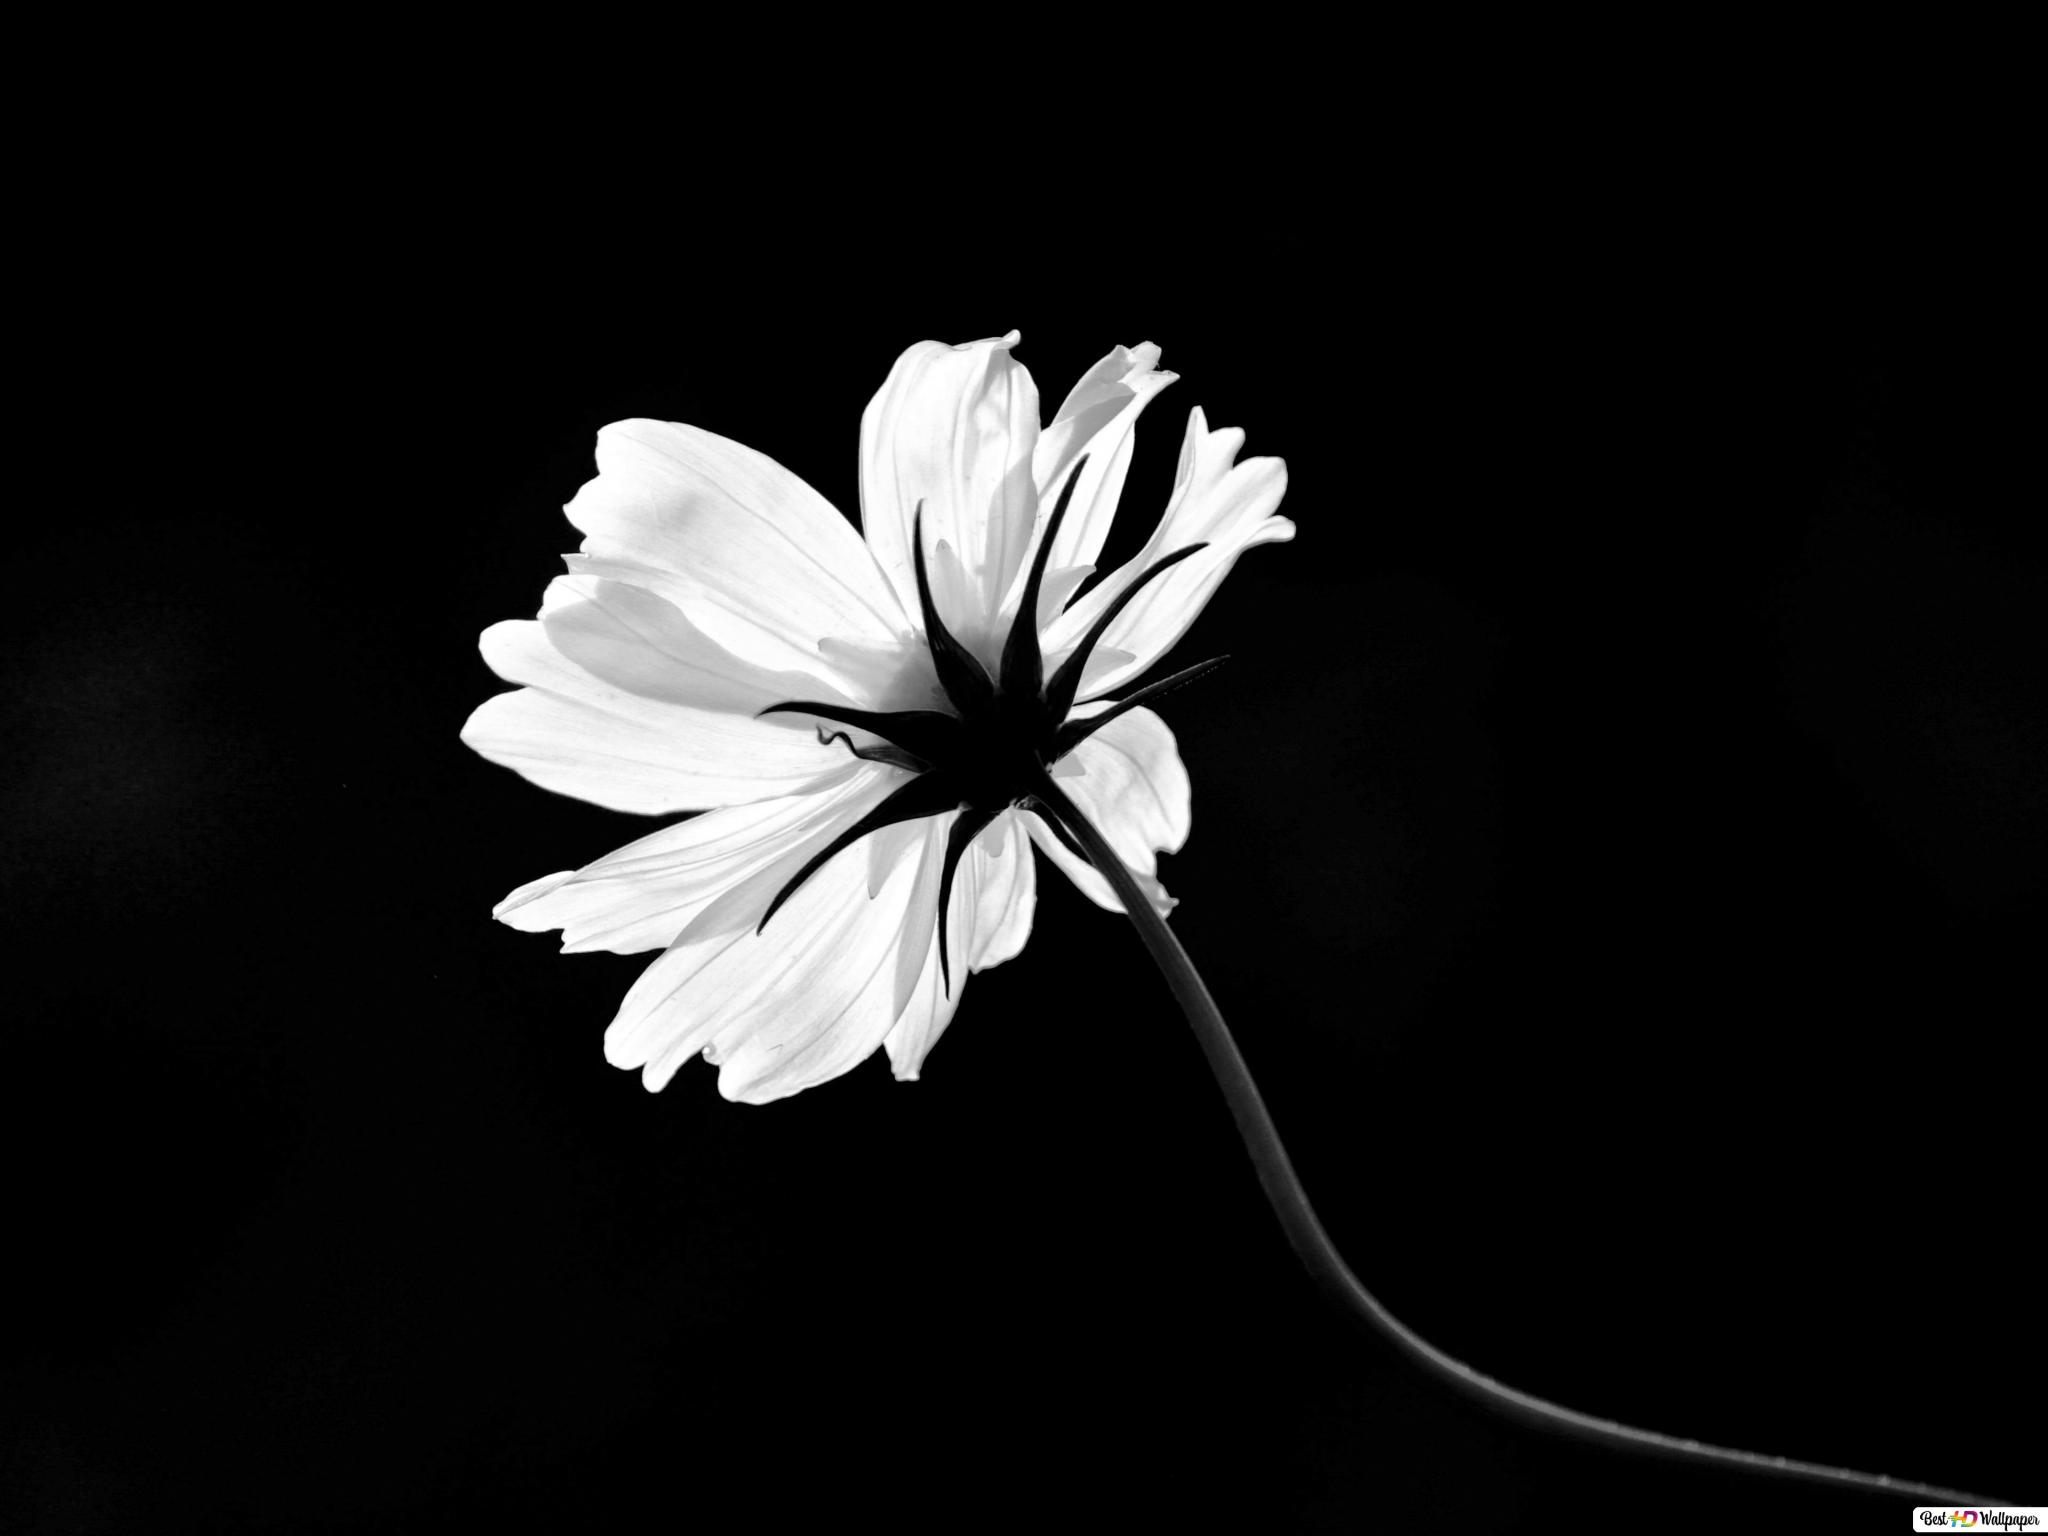 Bw Flower Single Hd Wallpaper Download